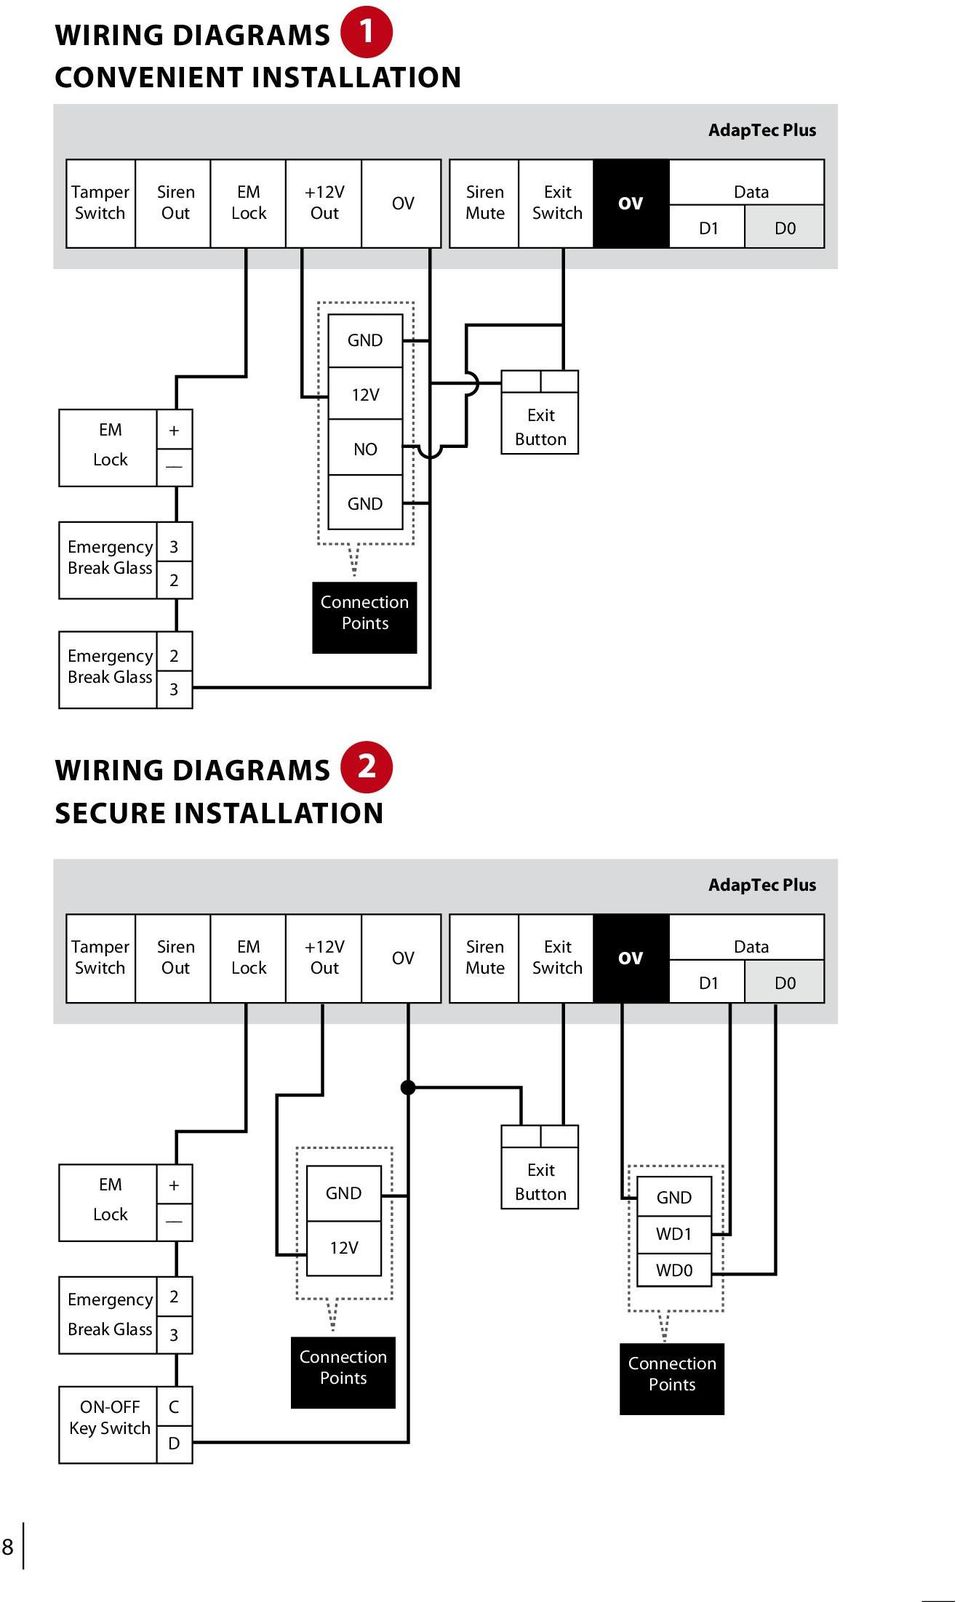 medium resolution of wiring diagrams secure installation adaptec plus tamper siren em 1v siren exit data switch out